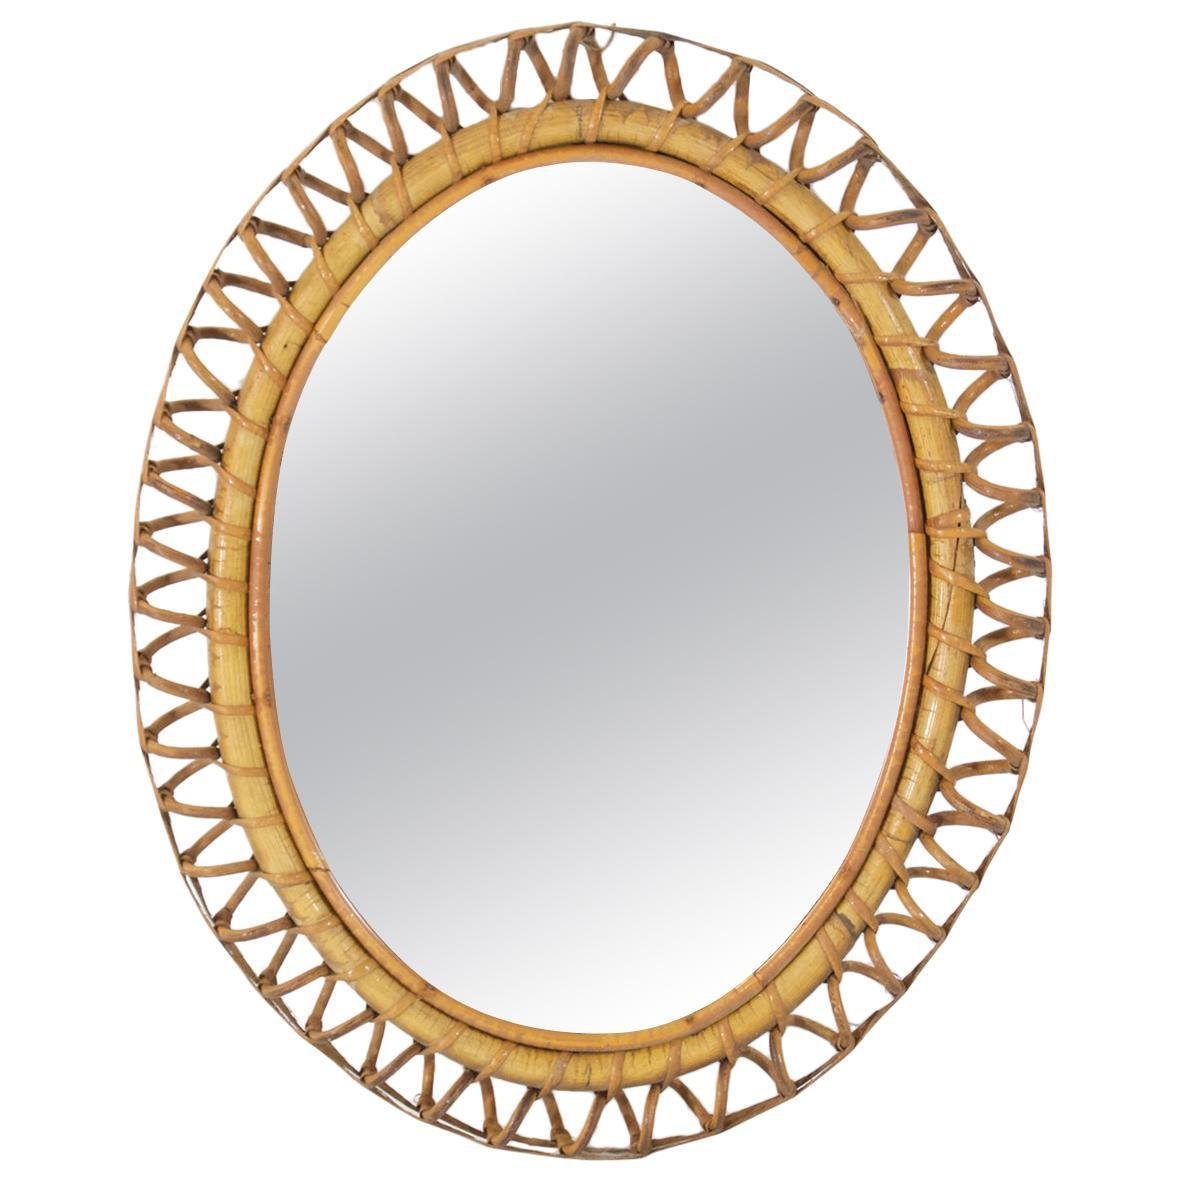 Oval Rattan Mirror Italy 1960s For Sale At Pamono